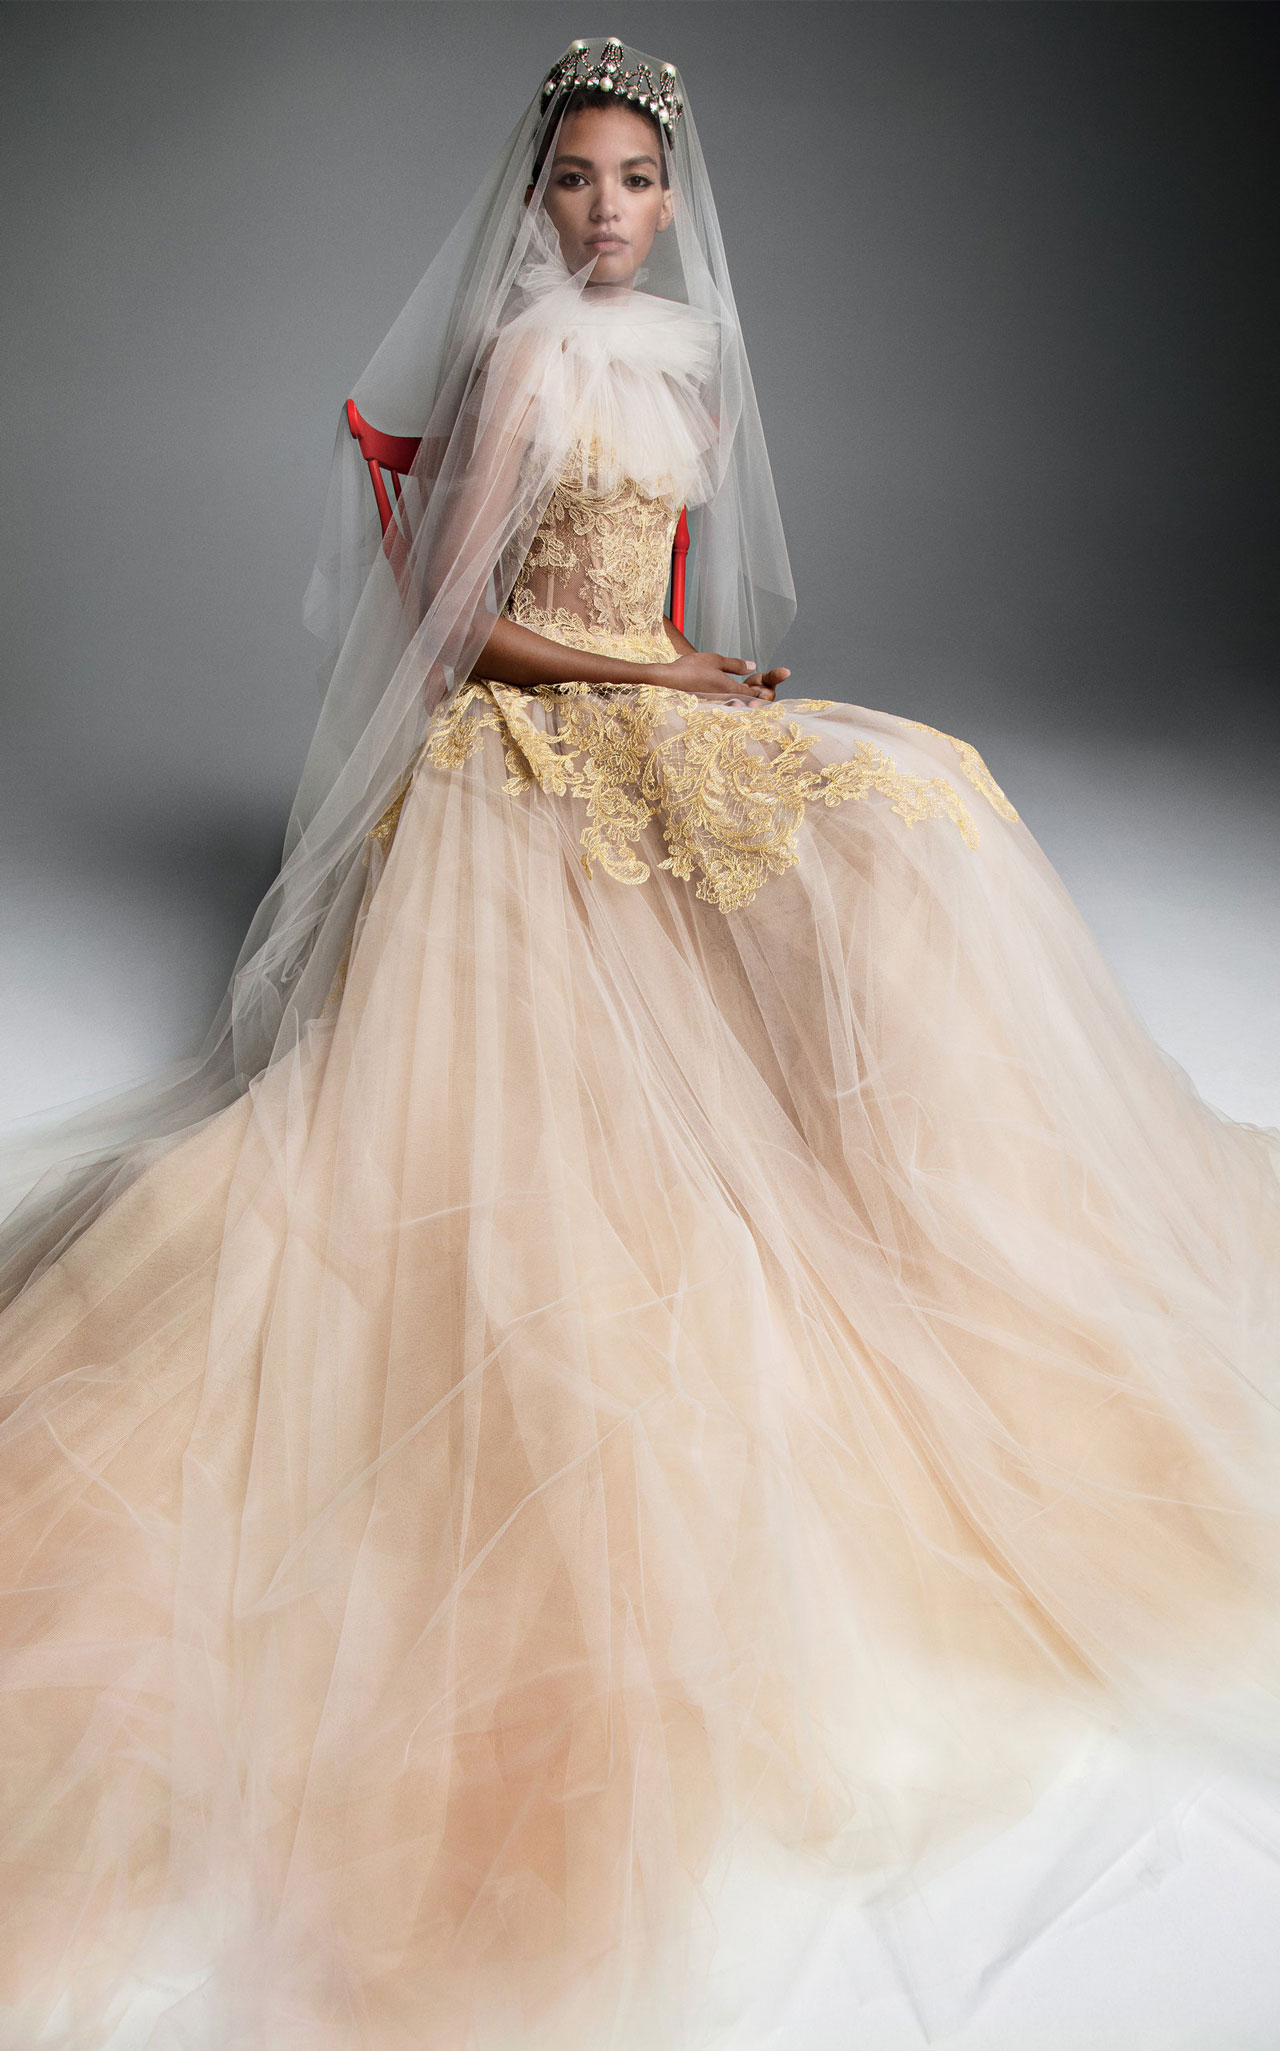 27a3c9a306f2 The biggest wedding dress trend for 2019 according to Pinterest